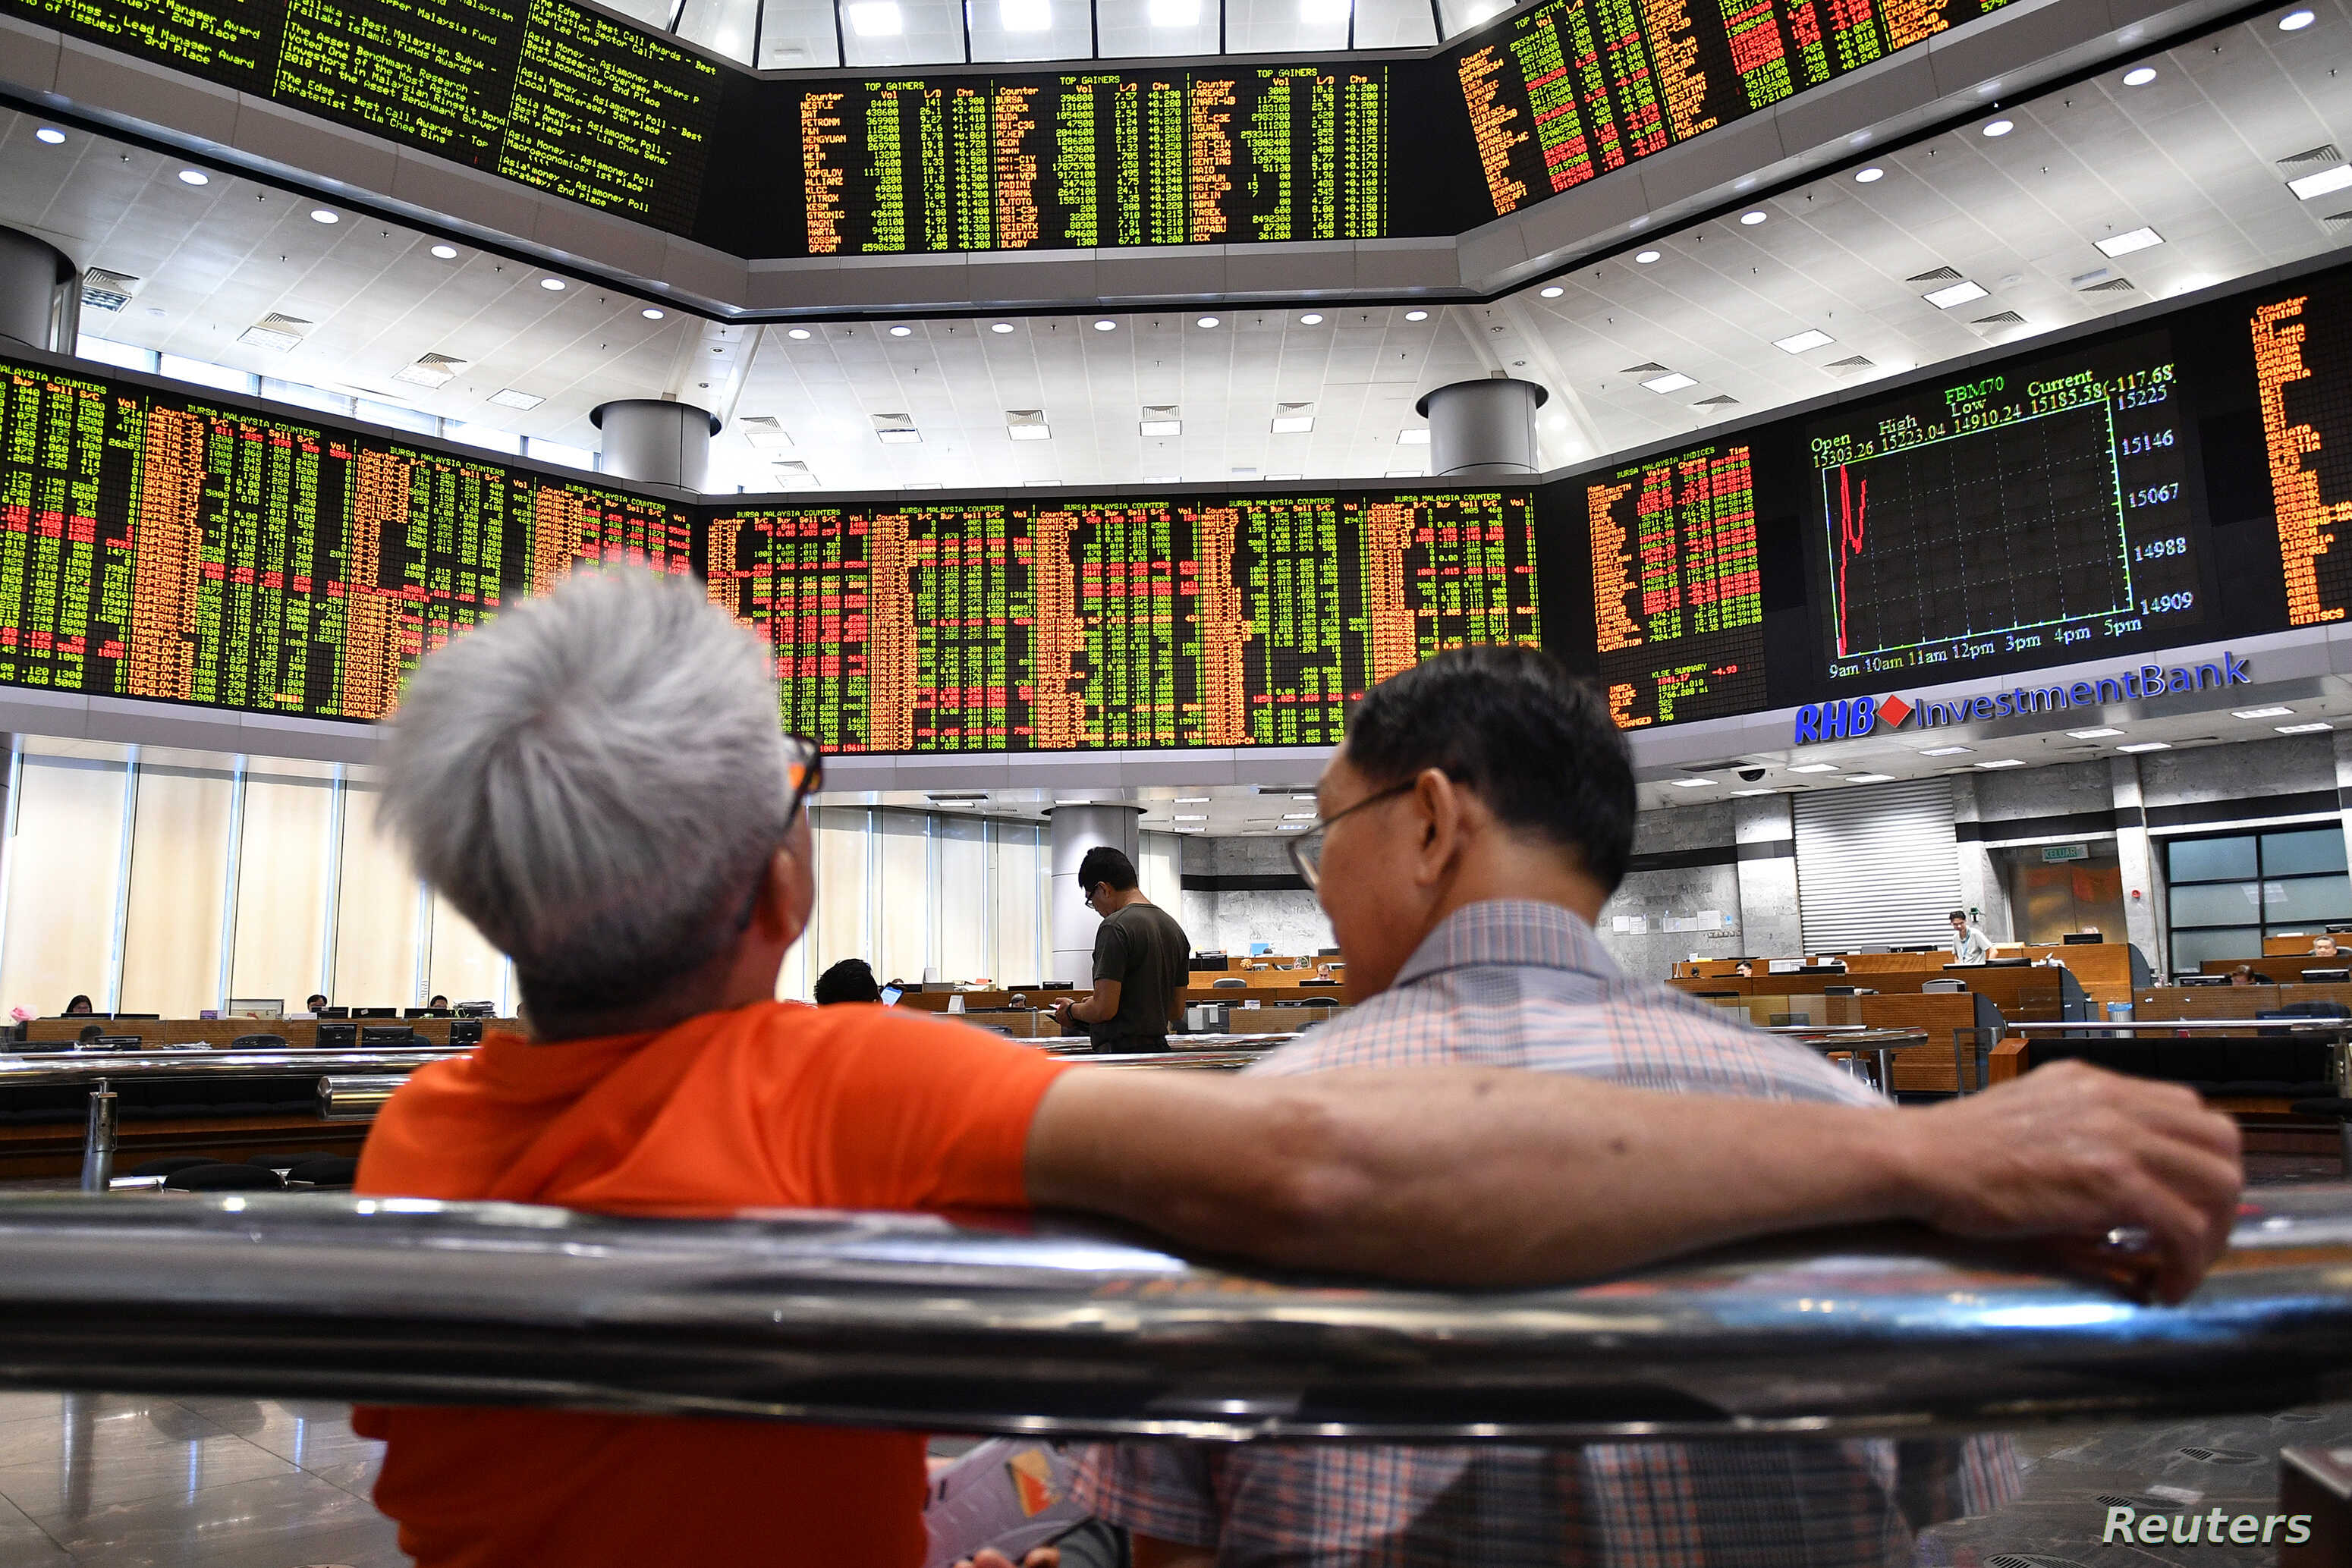 People look at trading boards at a private stock market gallery in Kuala Lumpur, Malaysia, May 14, 2018.